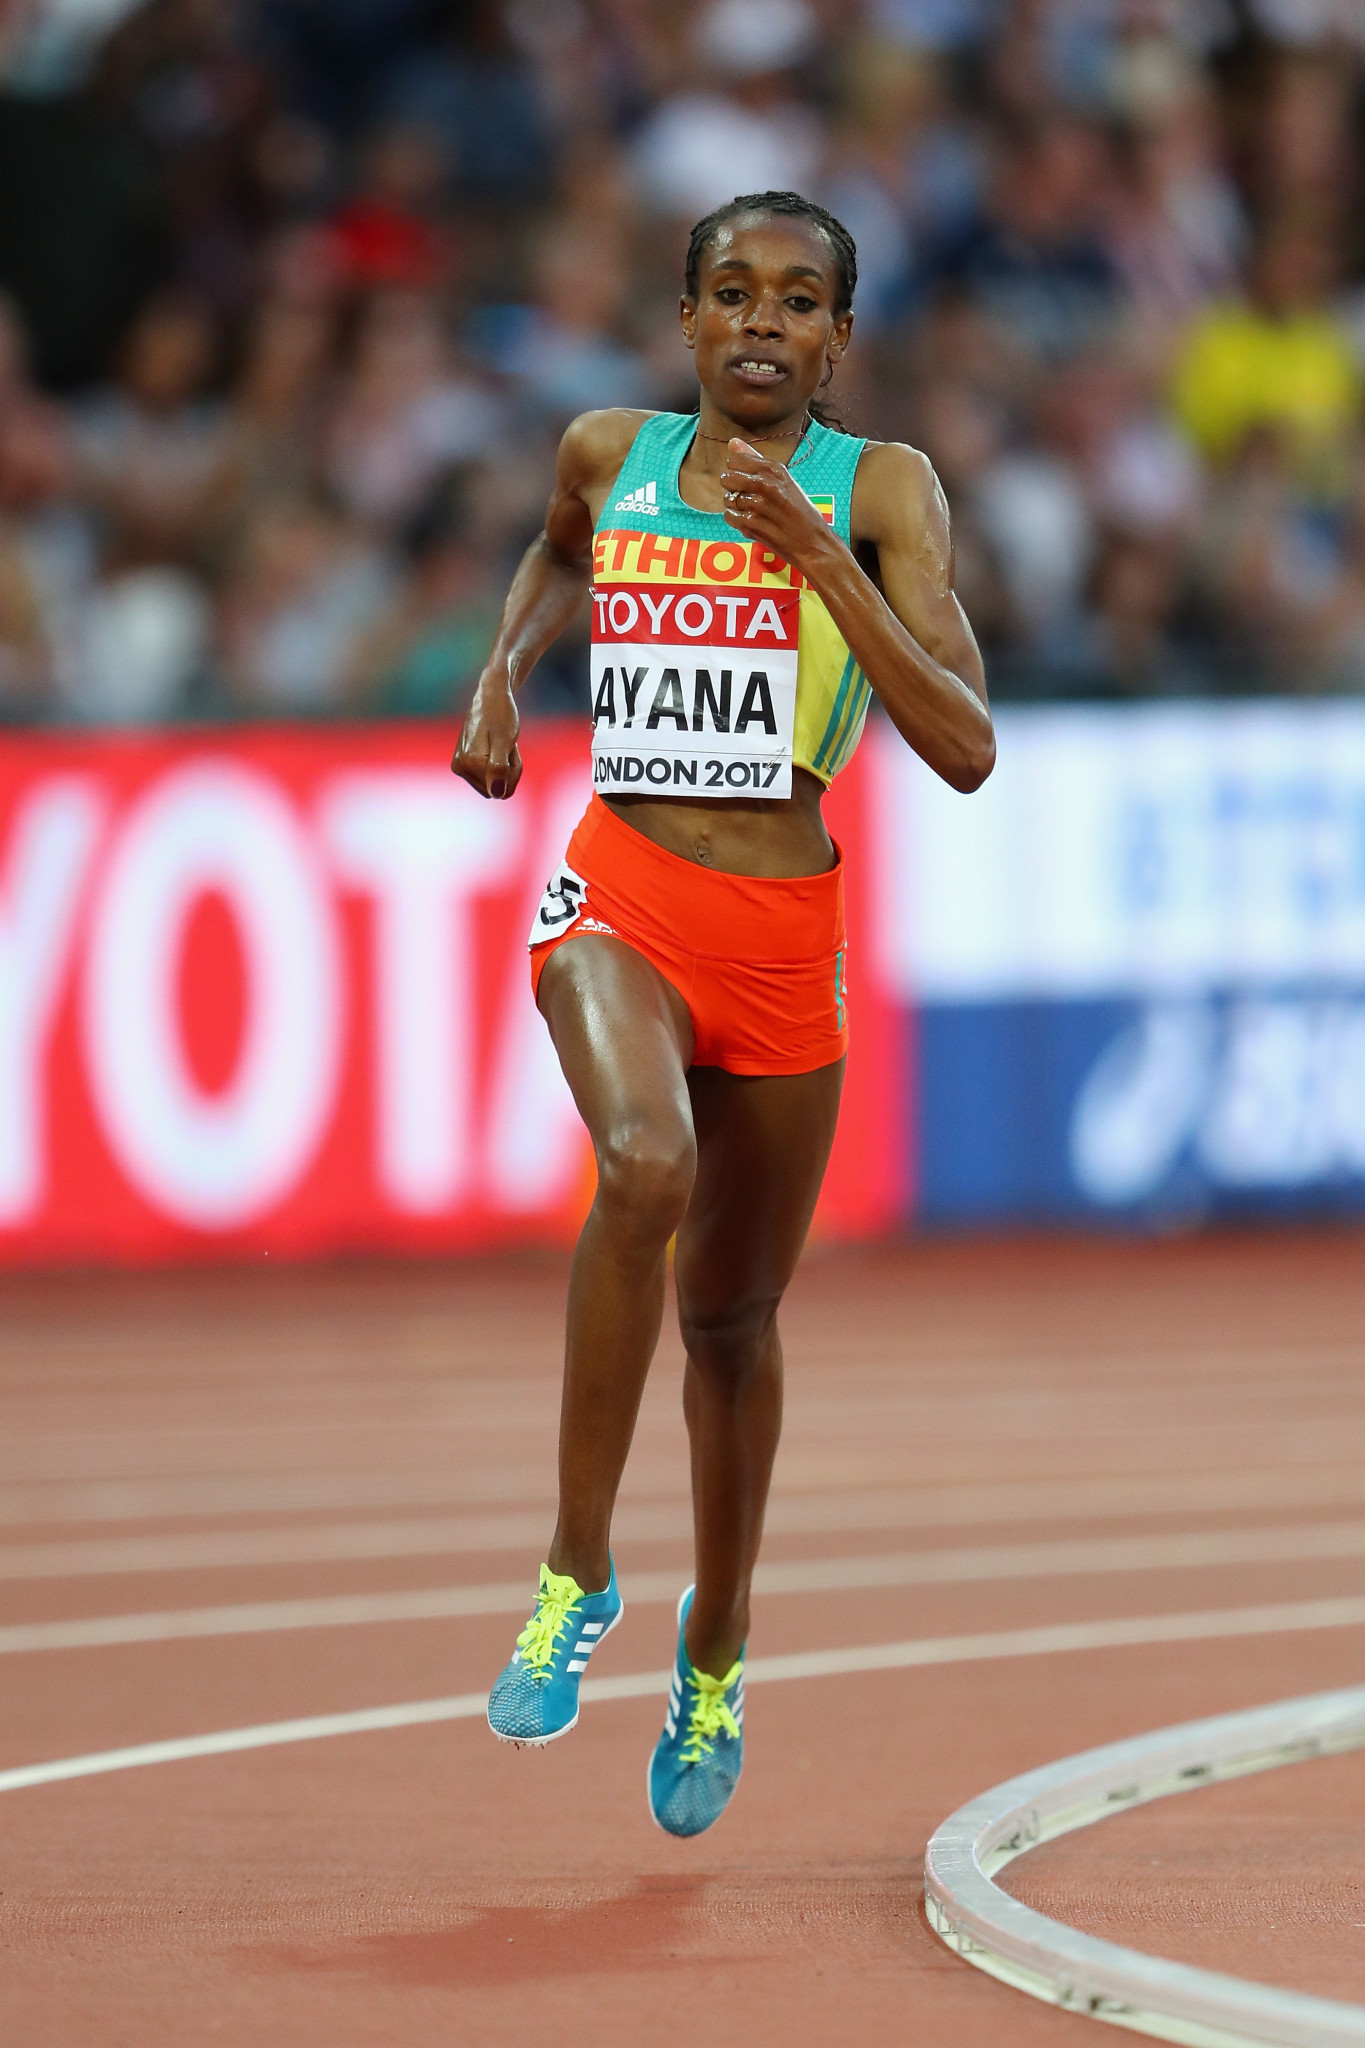 Ethiopia's world and Olympic 10,000m champion Almaz Ayana will be making her first competitive appearance on the track since 2017 when she takes part in tomorrow's IAAF Diamond League meeting in Stanford, California ©Getty Images